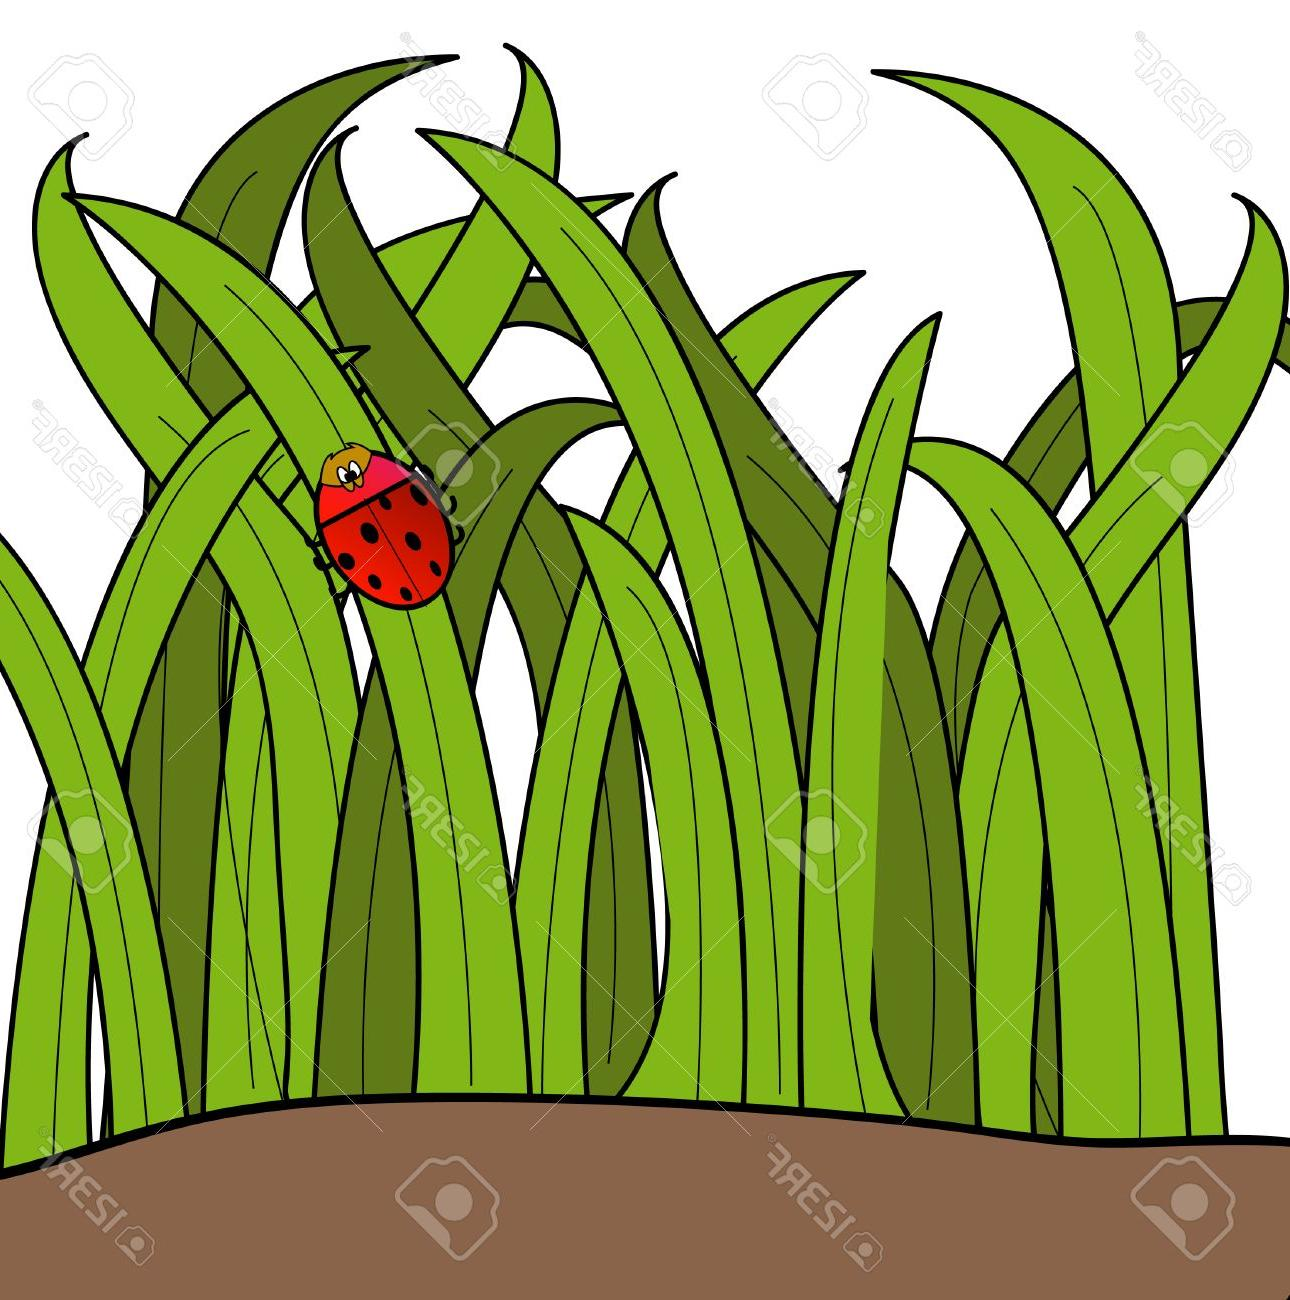 Unique features of clipart jpg royalty free Unique Blades Of Grass Clip Art Vector Image » Free Vector ... jpg royalty free